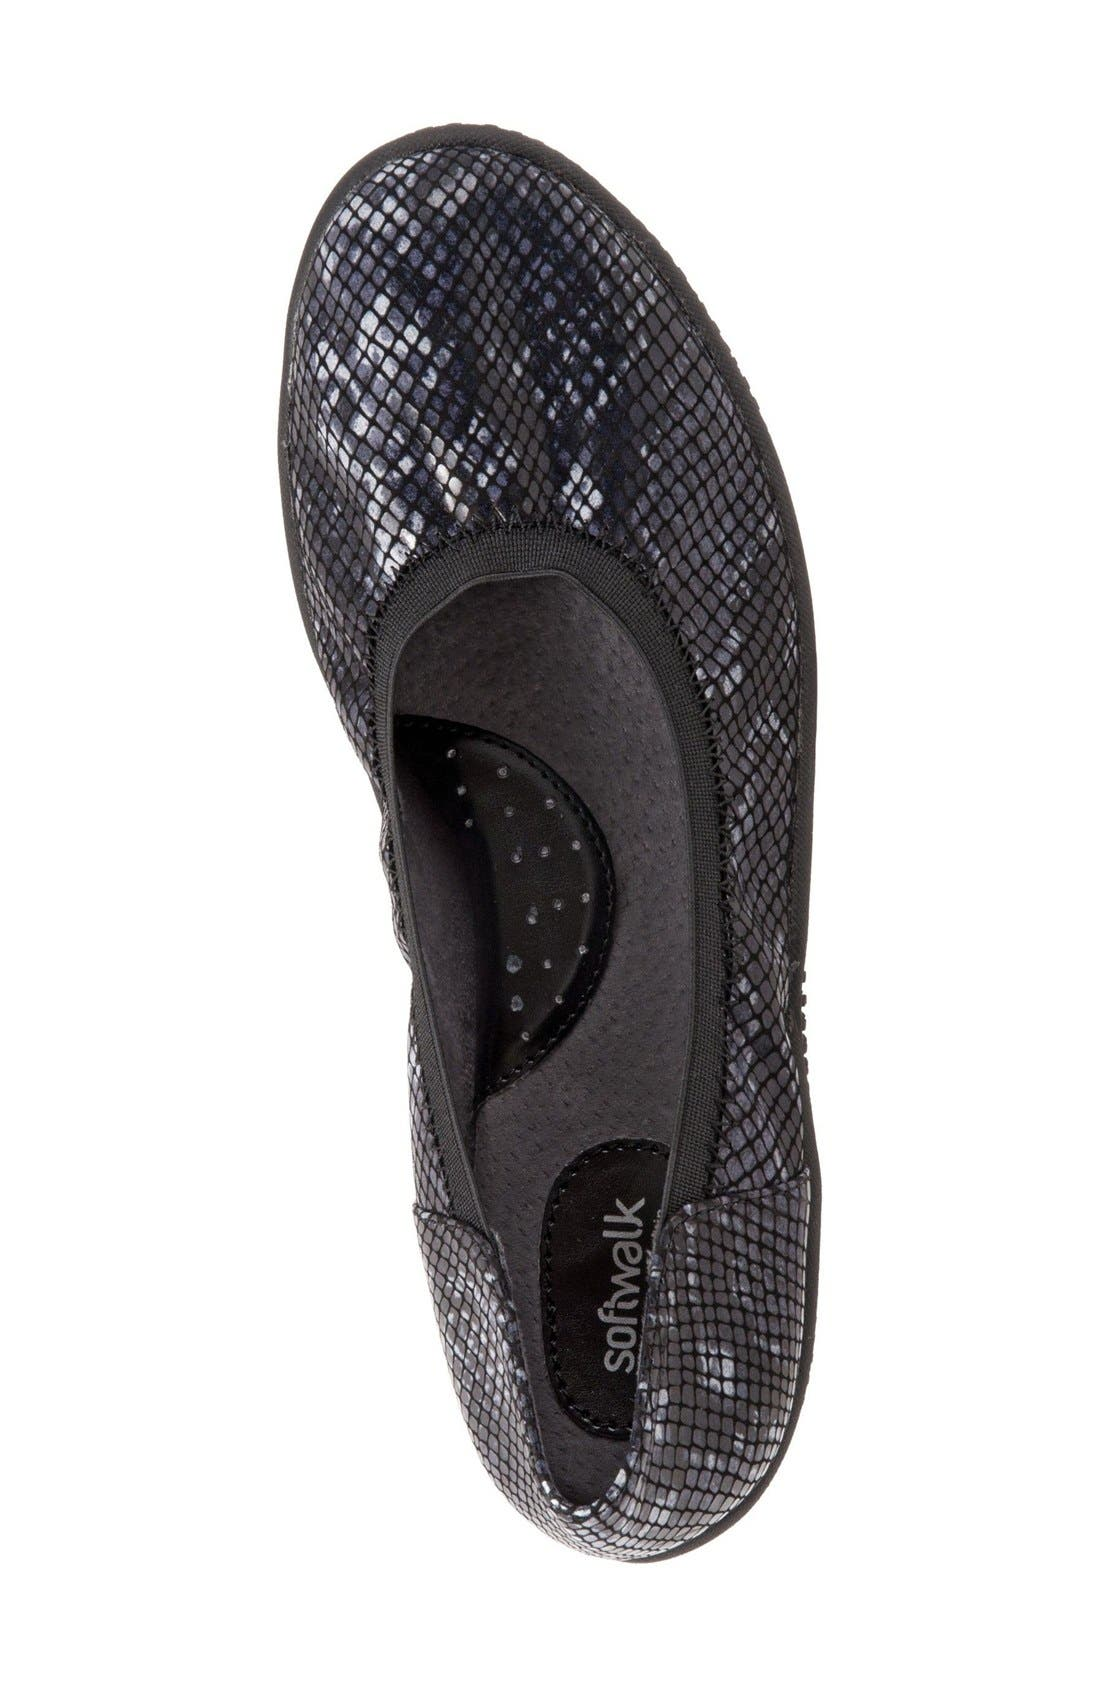 'Hampshire' Dot Perforated Ballet Flat,                             Alternate thumbnail 2, color,                             Black Python Print Leather